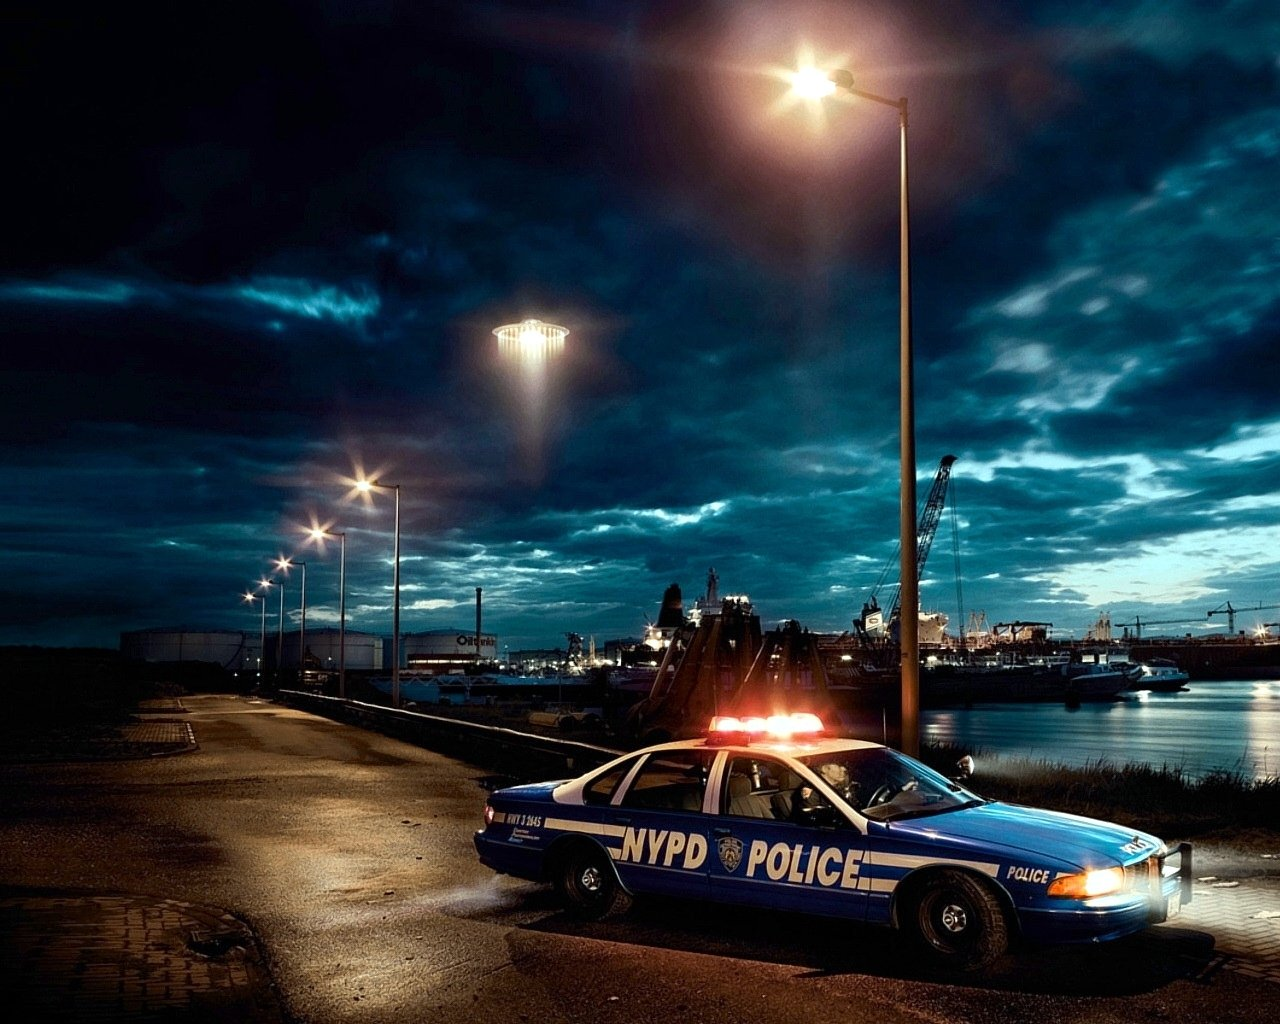 Police Wallpapers 1280x1024